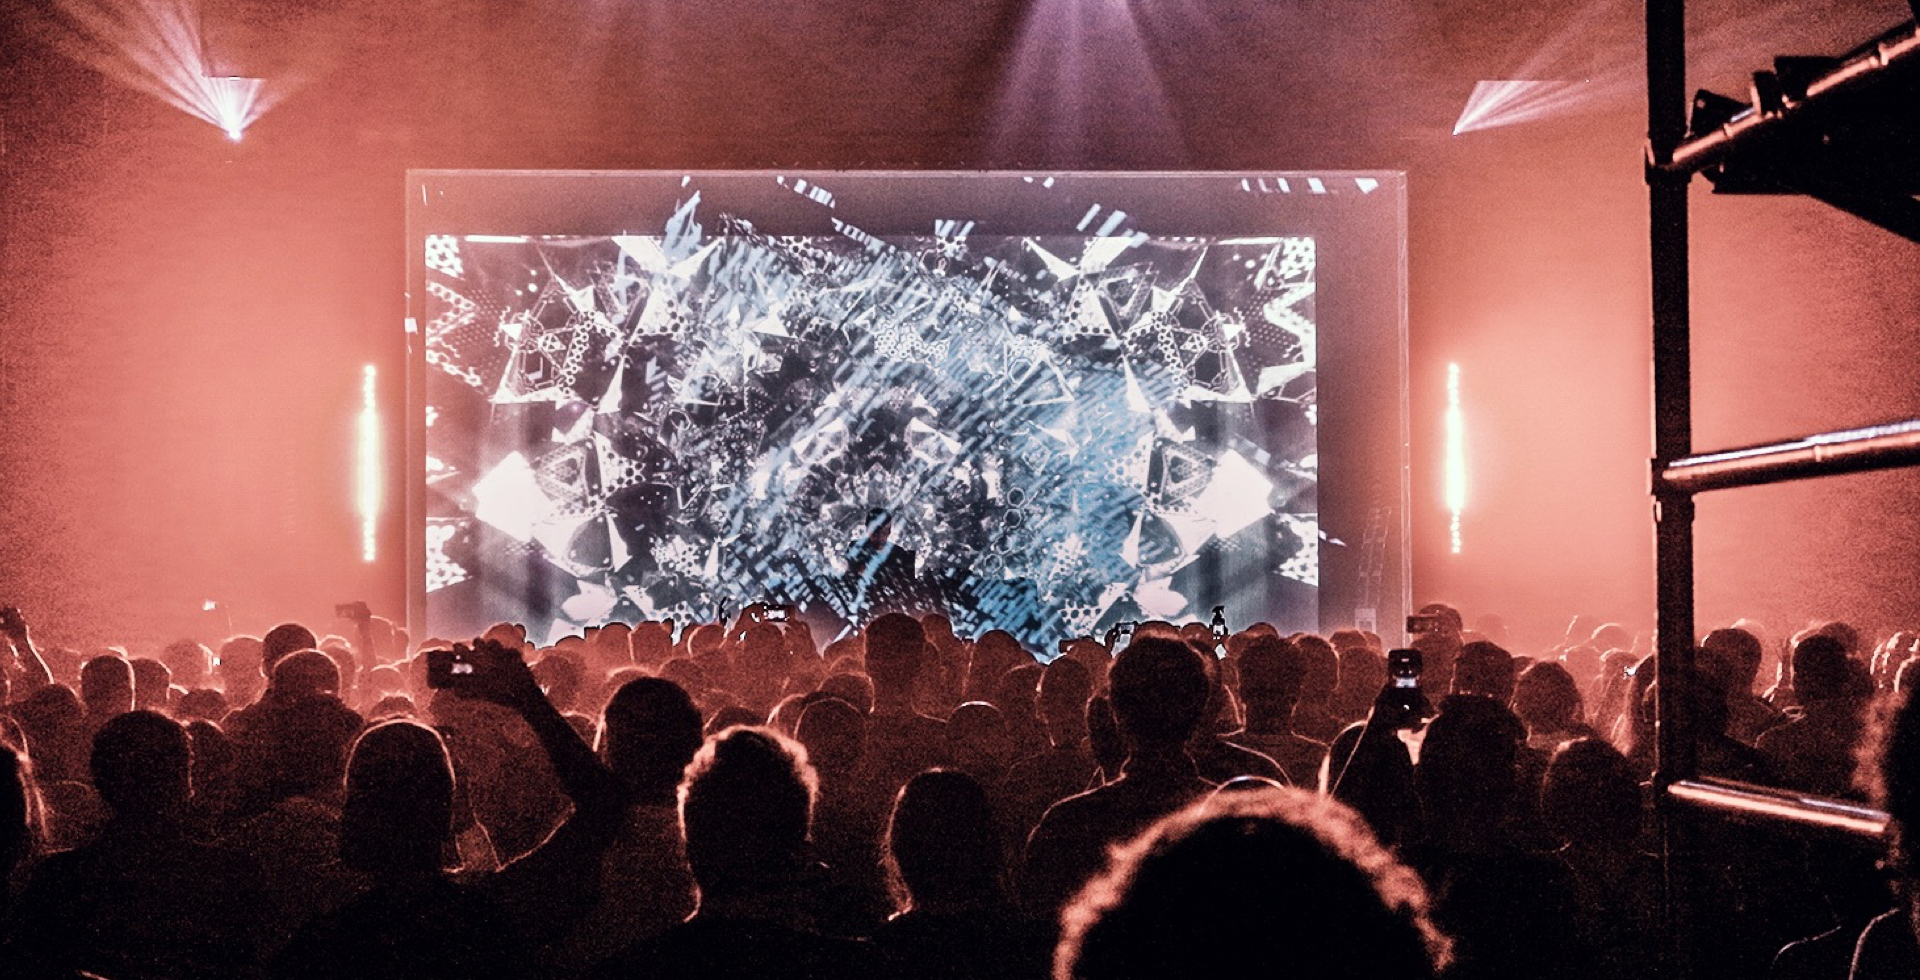 Experimental hip hop genius, Flying Lotus, first-time in Singapore with The Gathering